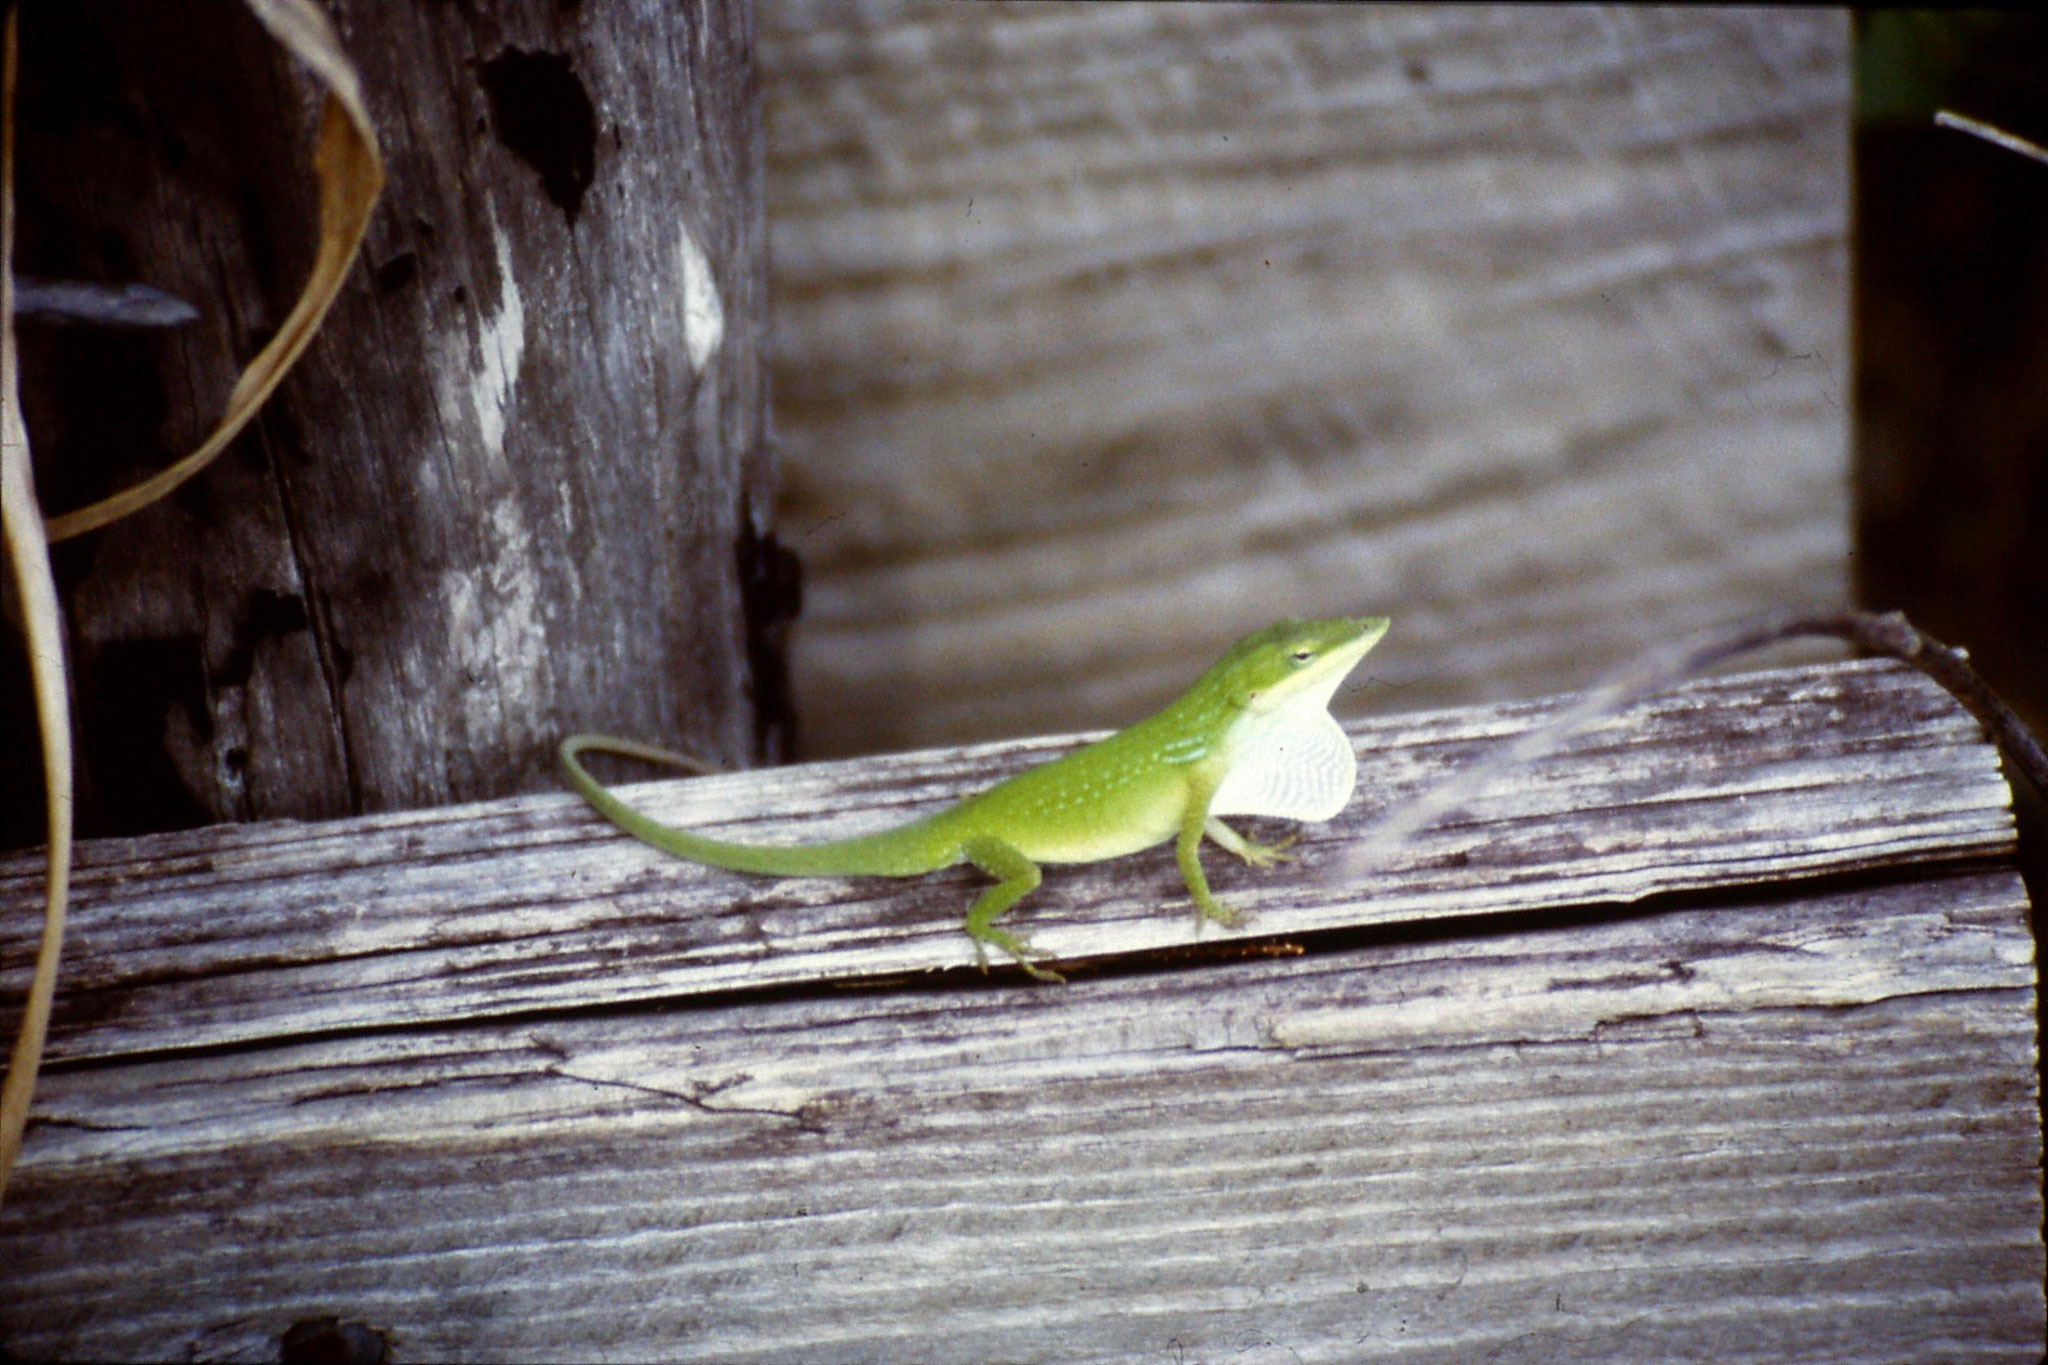 25/2/1991: 9: Corkscrew Swamp green anole lizard